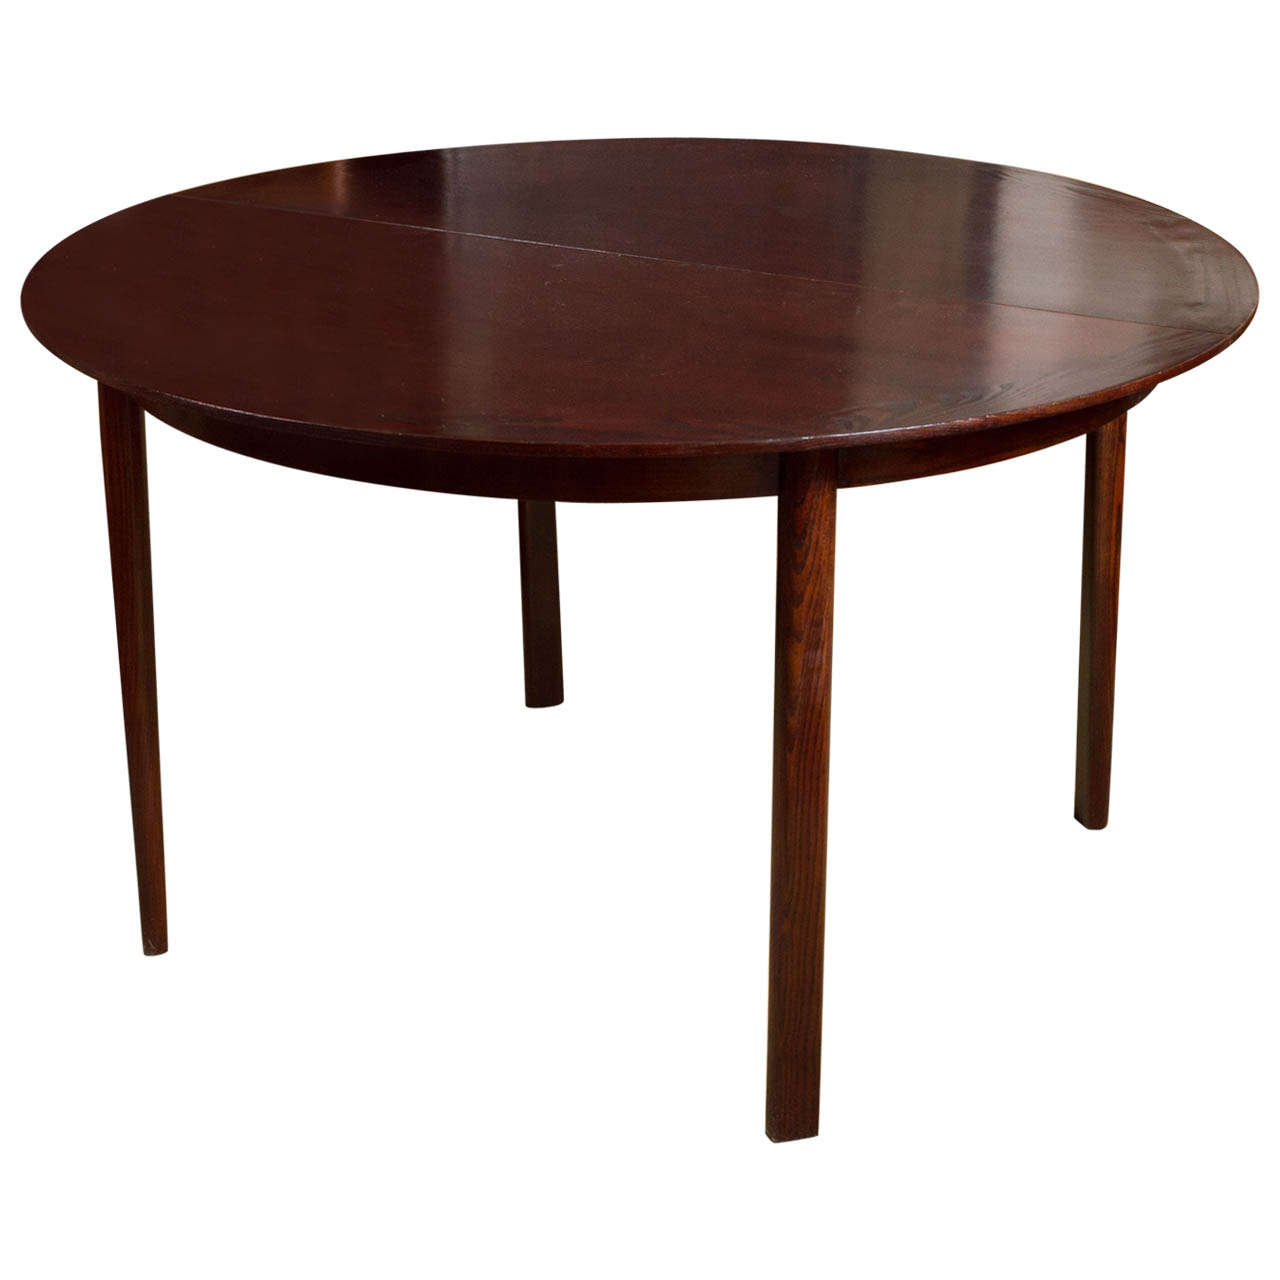 Large dunbar dining table with two leaves saturday sale for Dining room table 2 leaves